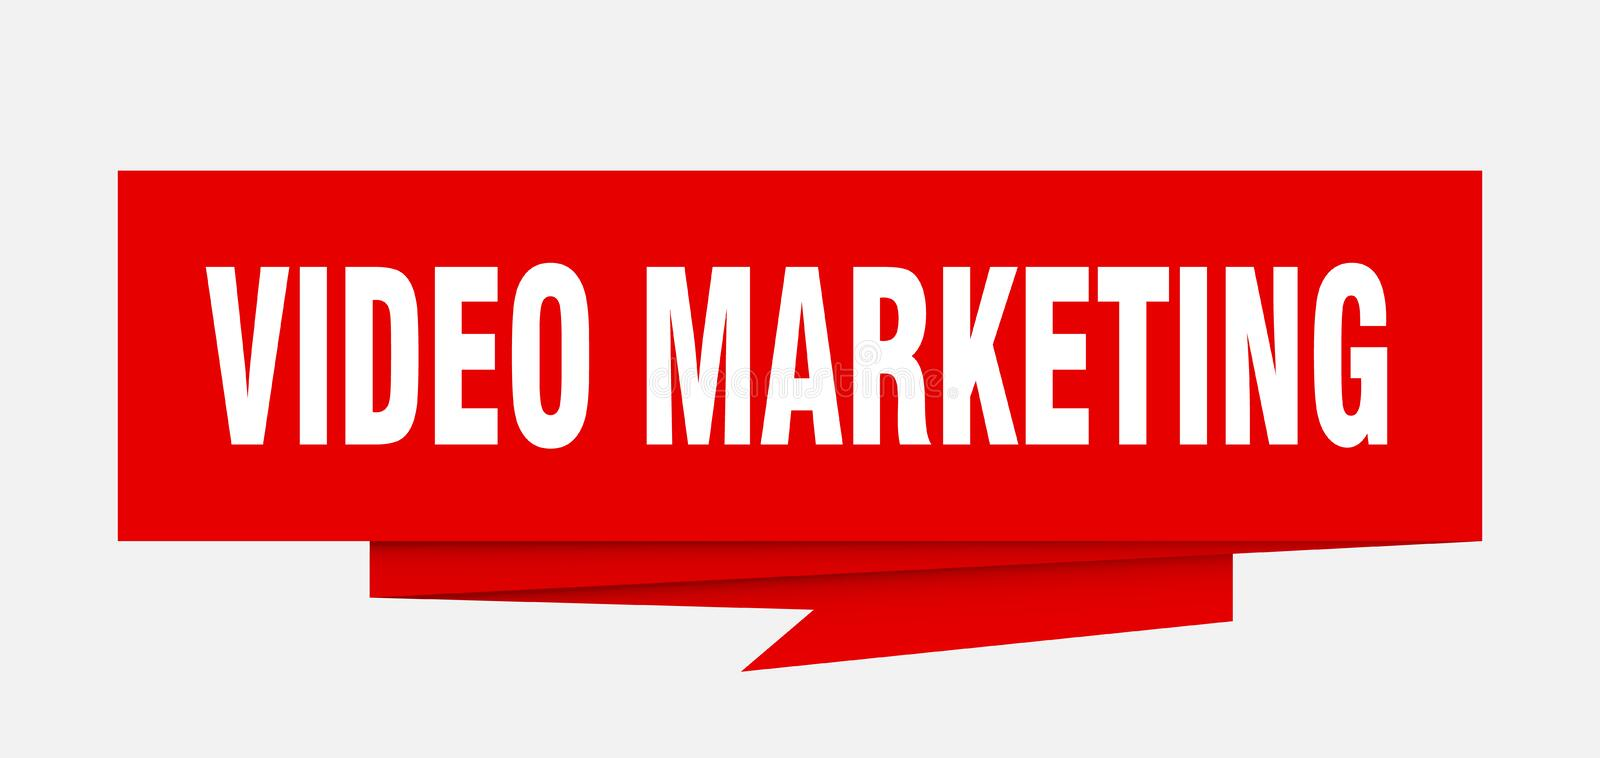 video marketing royalty free illustration